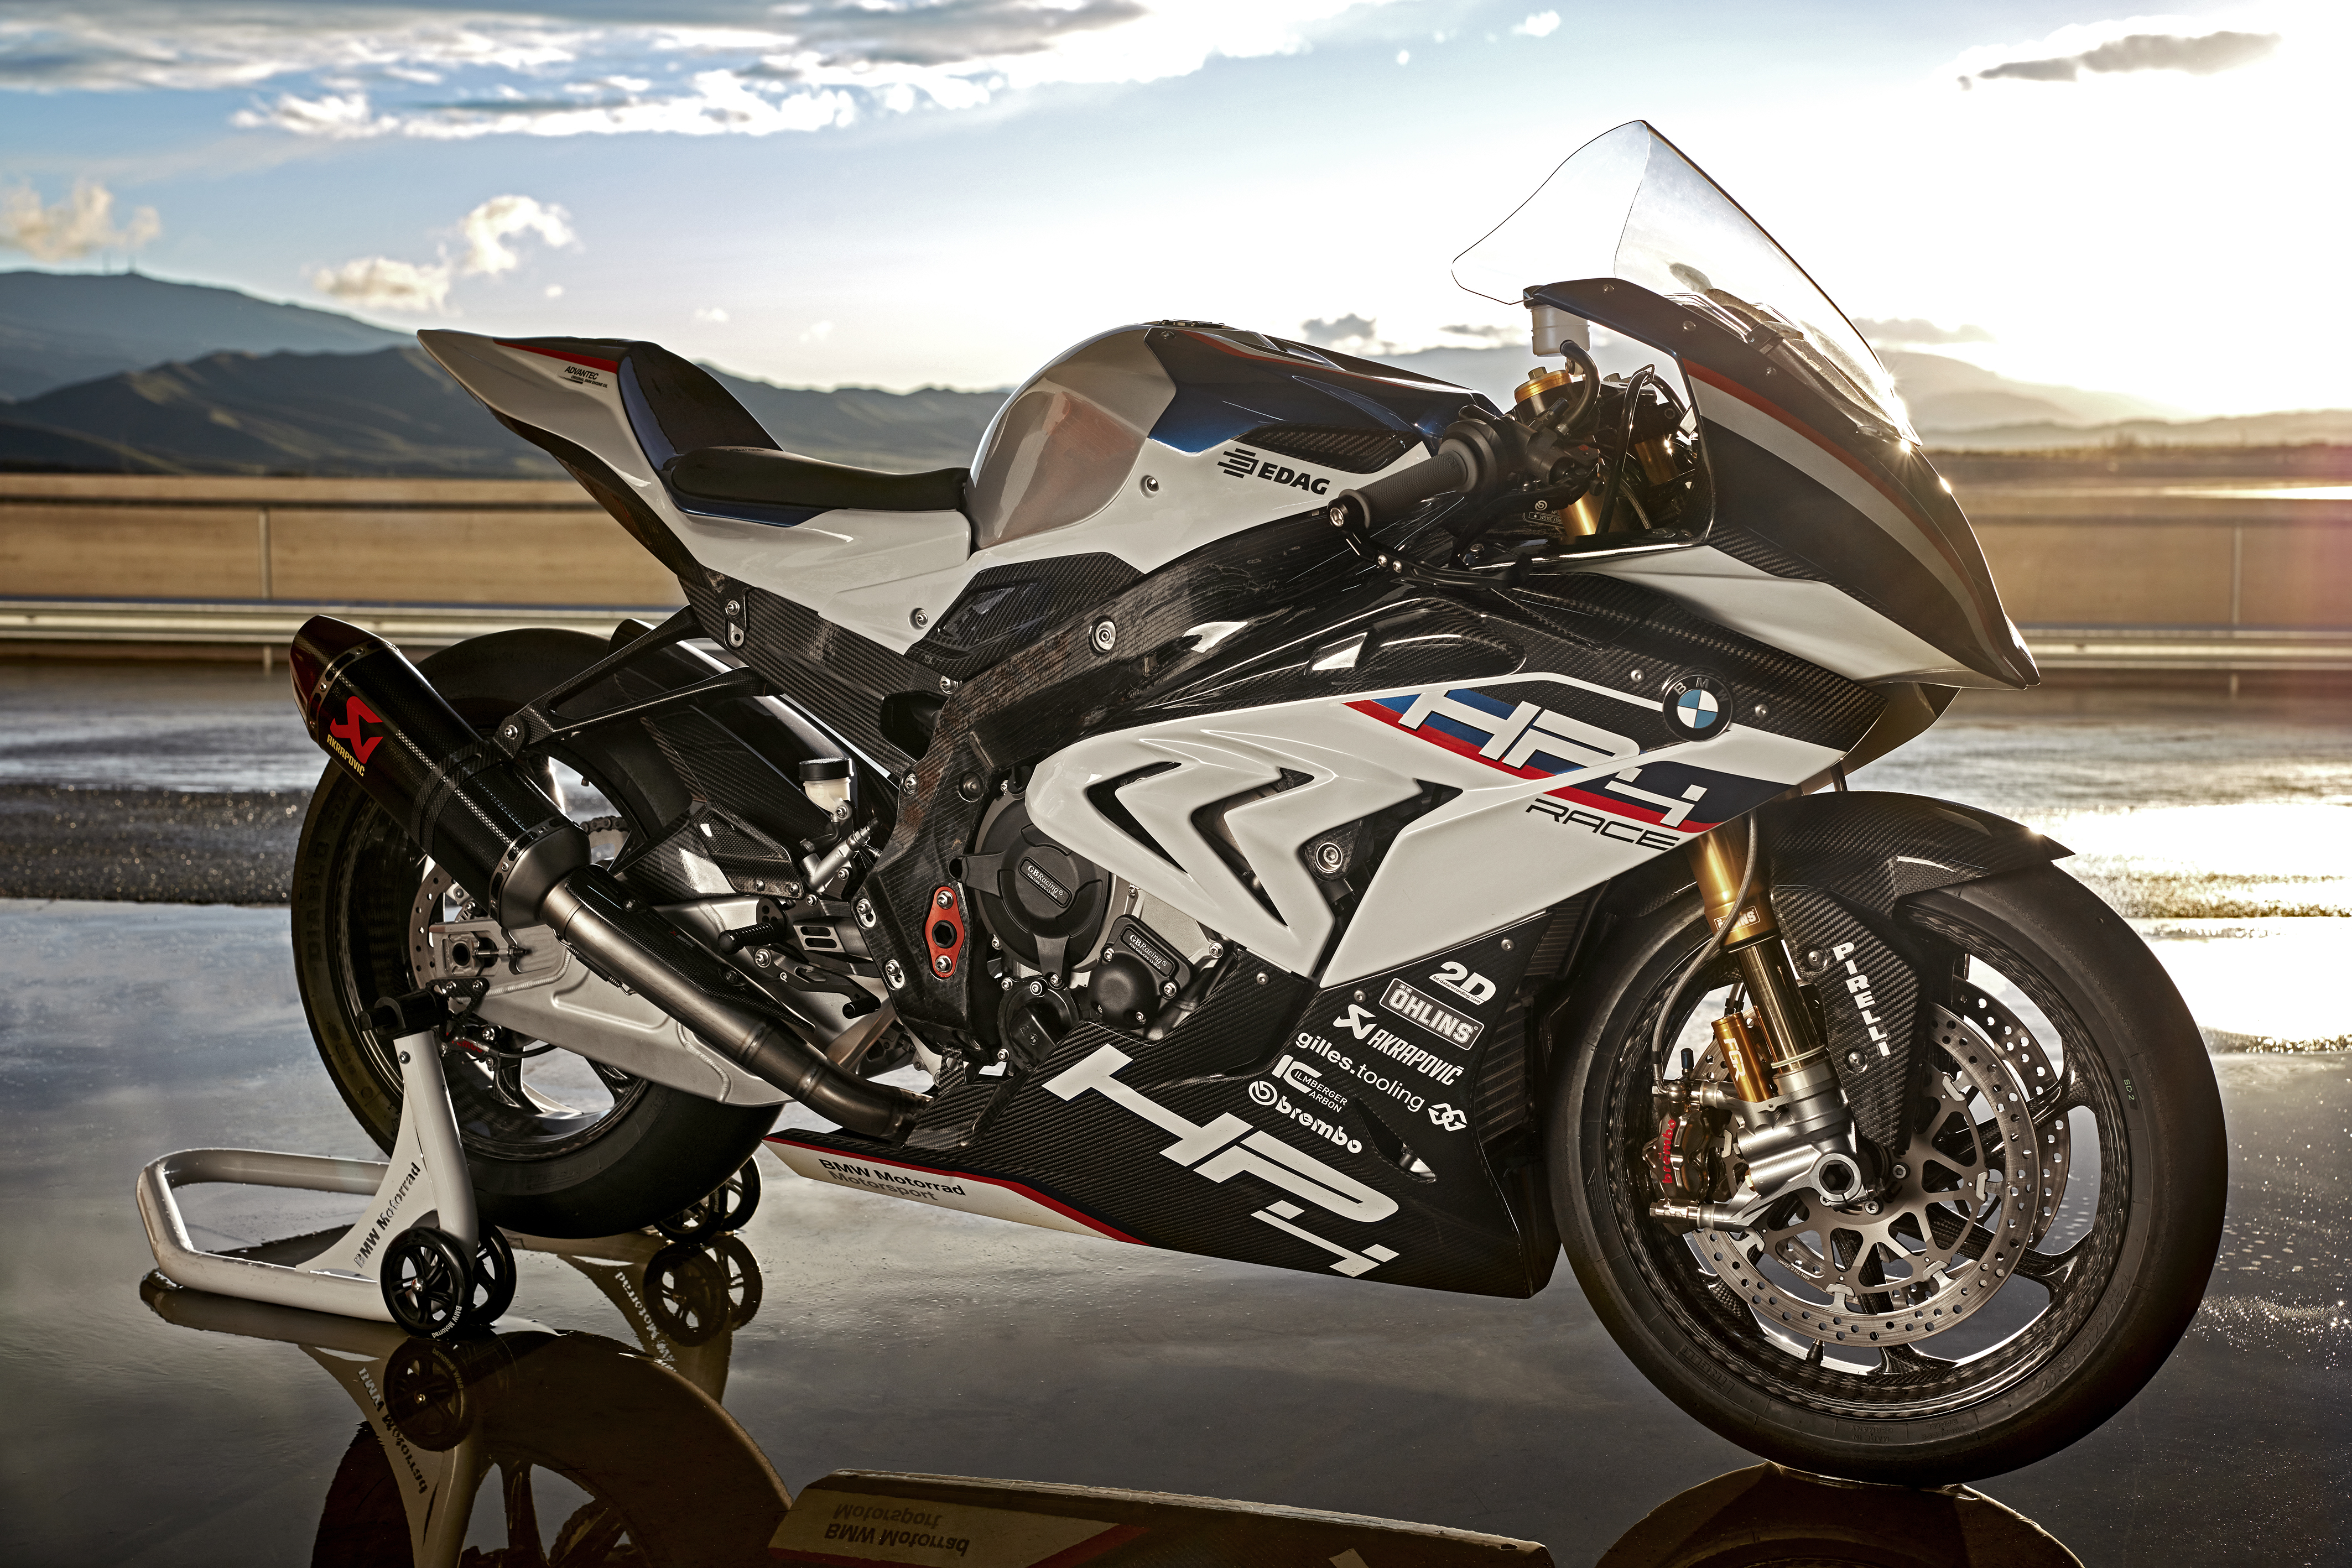 The 2017 Bmw Hp4 Race Is The Bike Carbon Fiber Dreams Are Made Of Cycle World